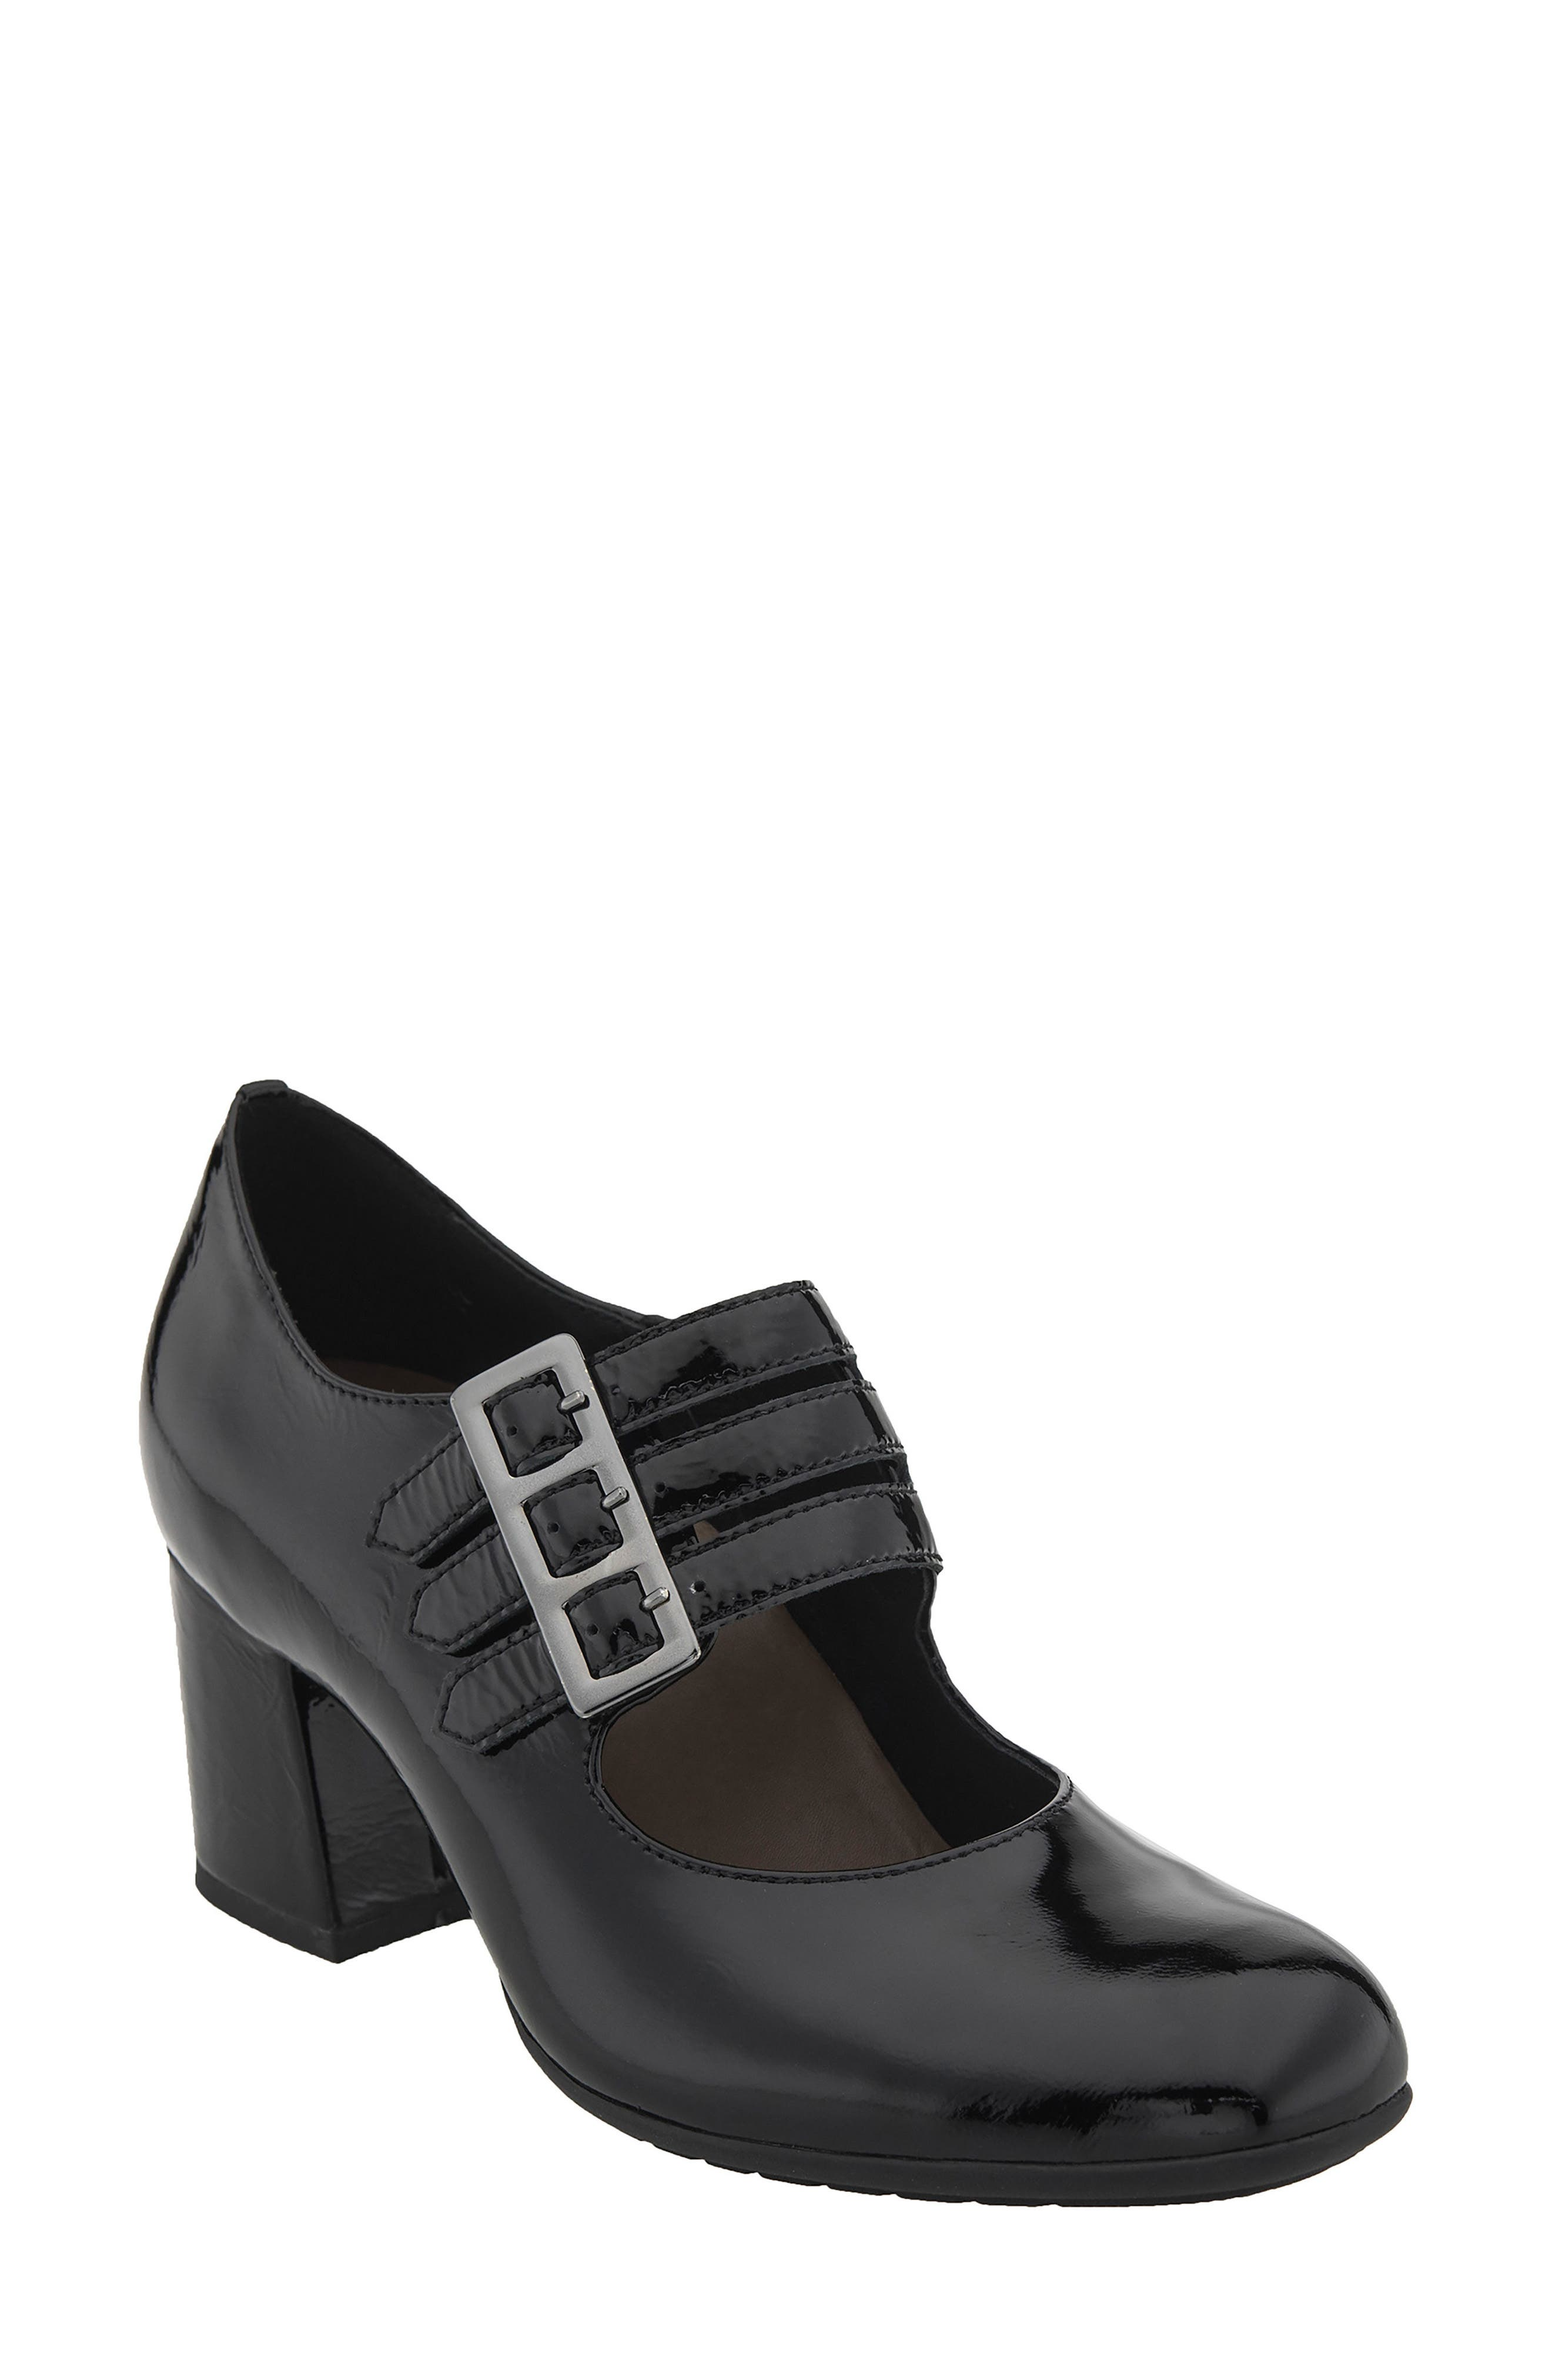 Fortuna Mary Jane Pump,                             Main thumbnail 1, color,                             Black Patent Leather